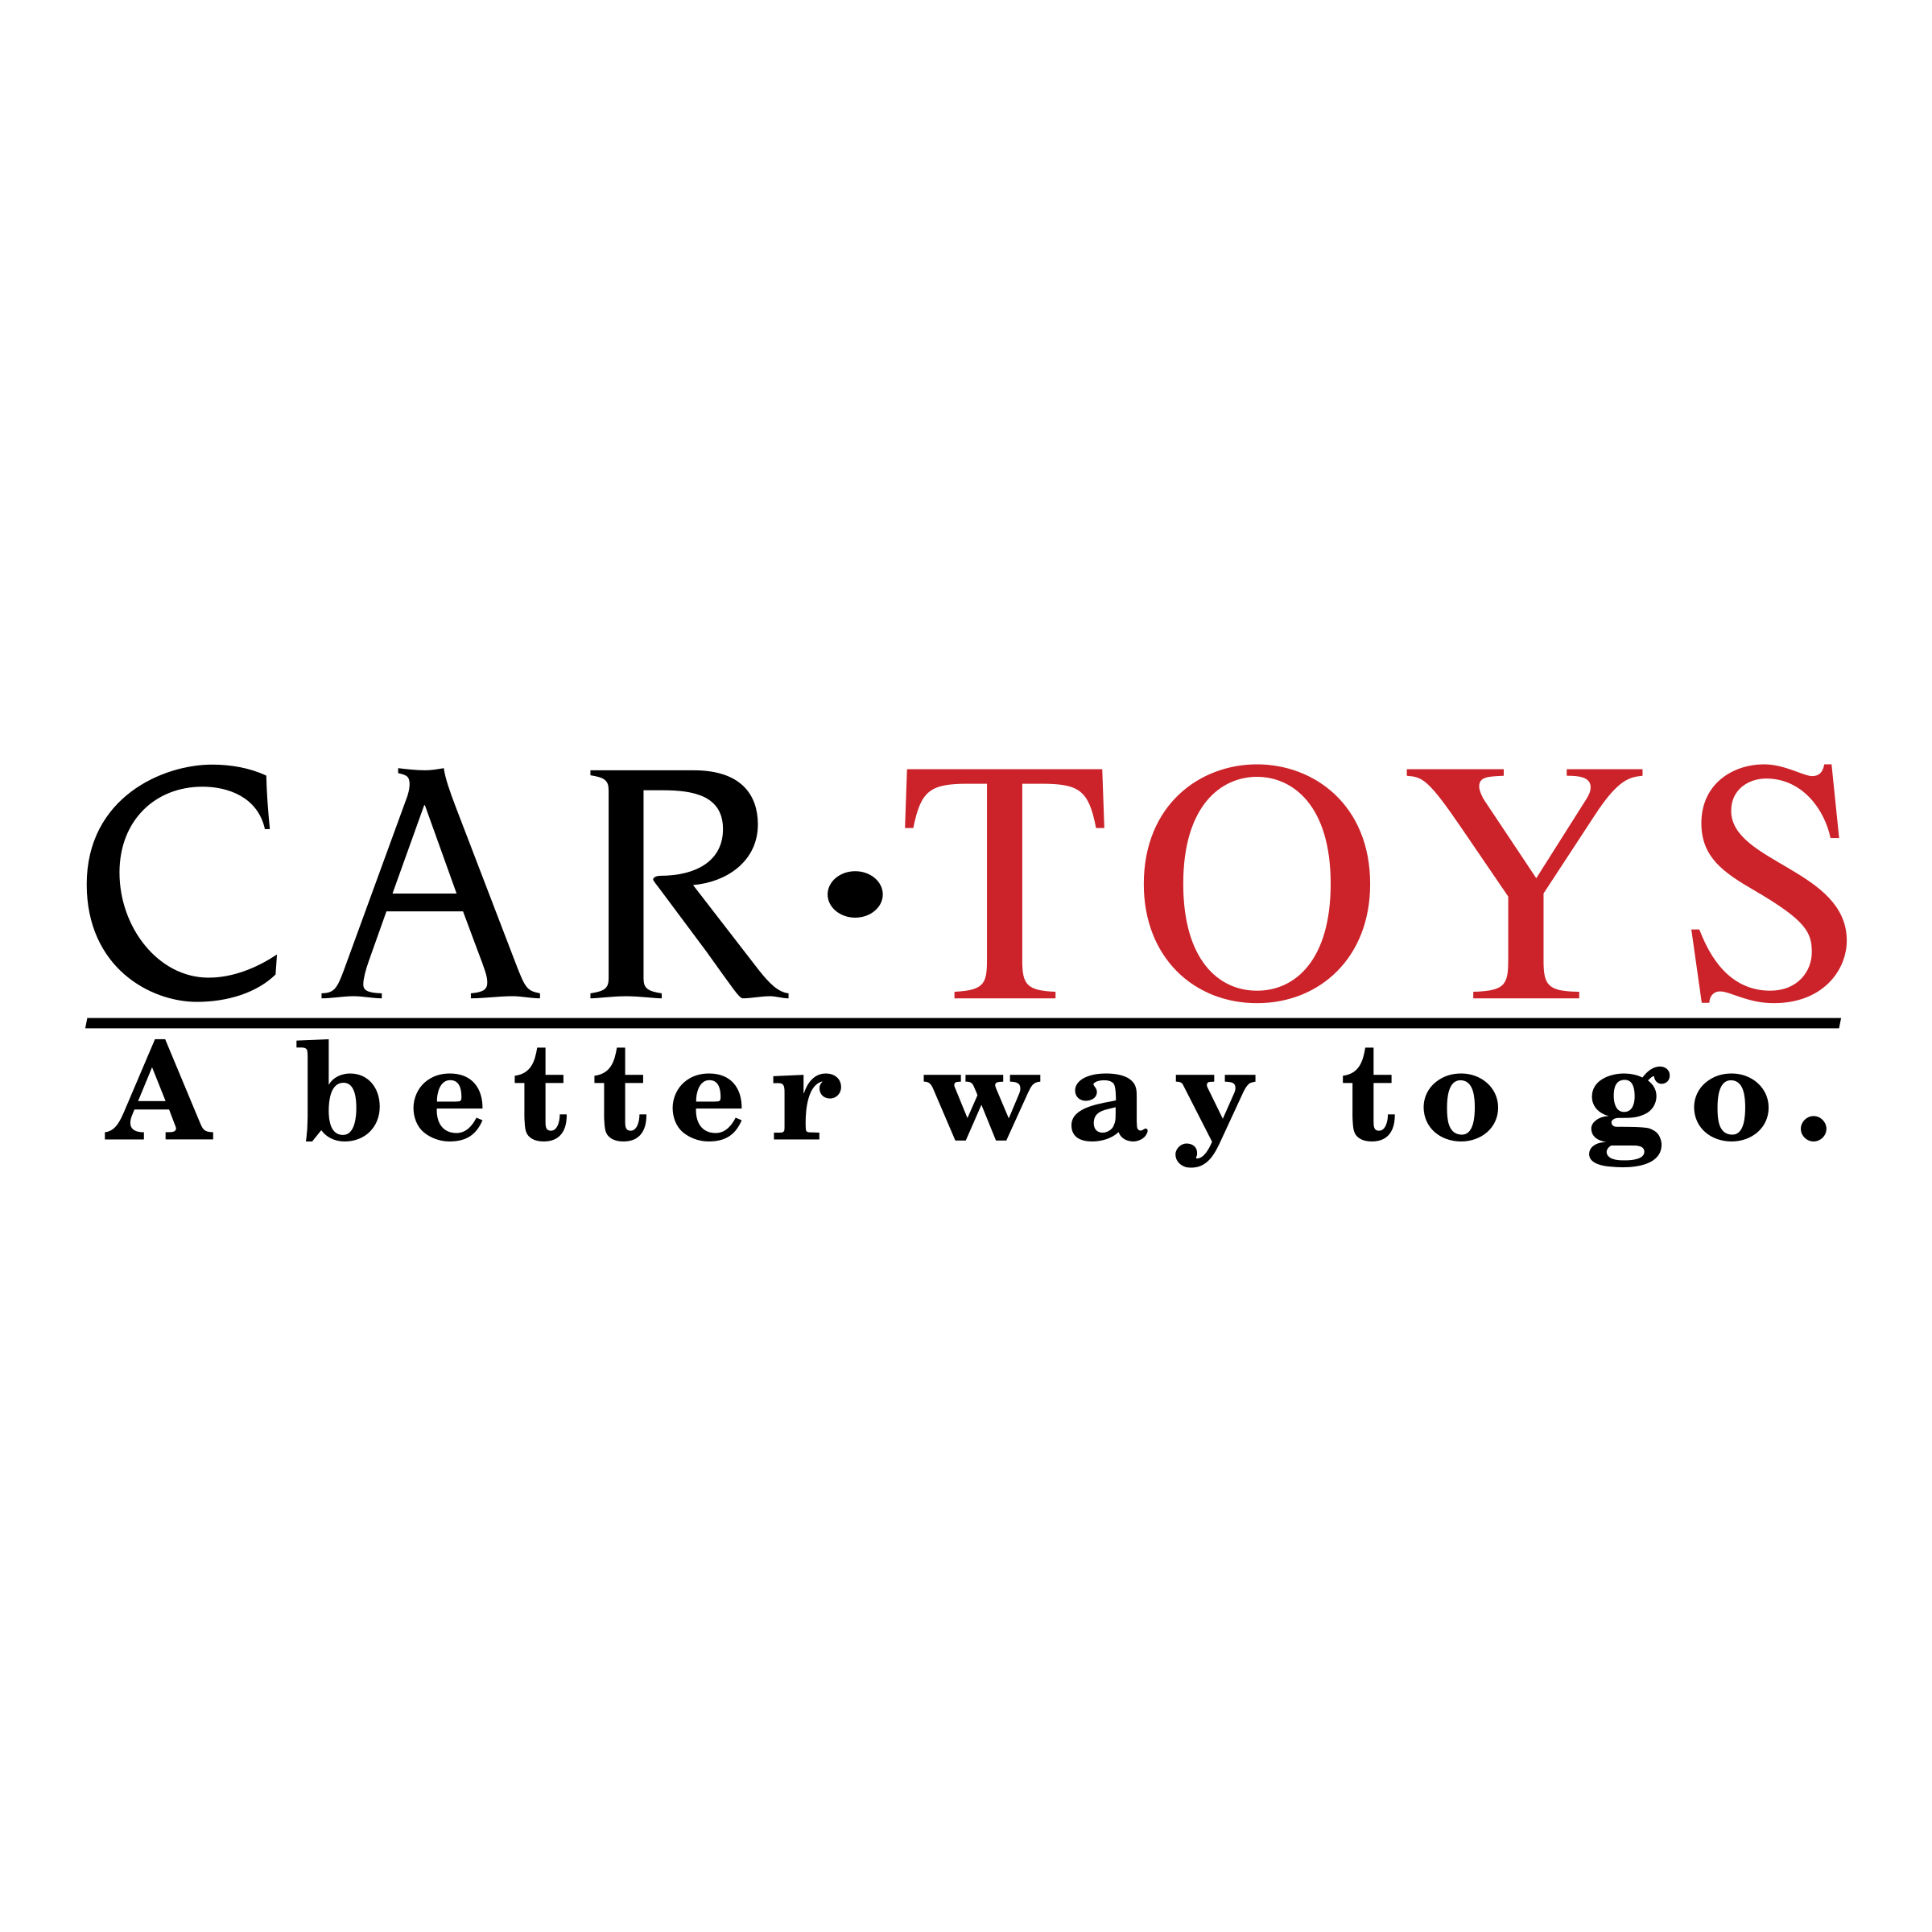 Car Toys Logo Png Transparent Svg Vector Freebie Supply